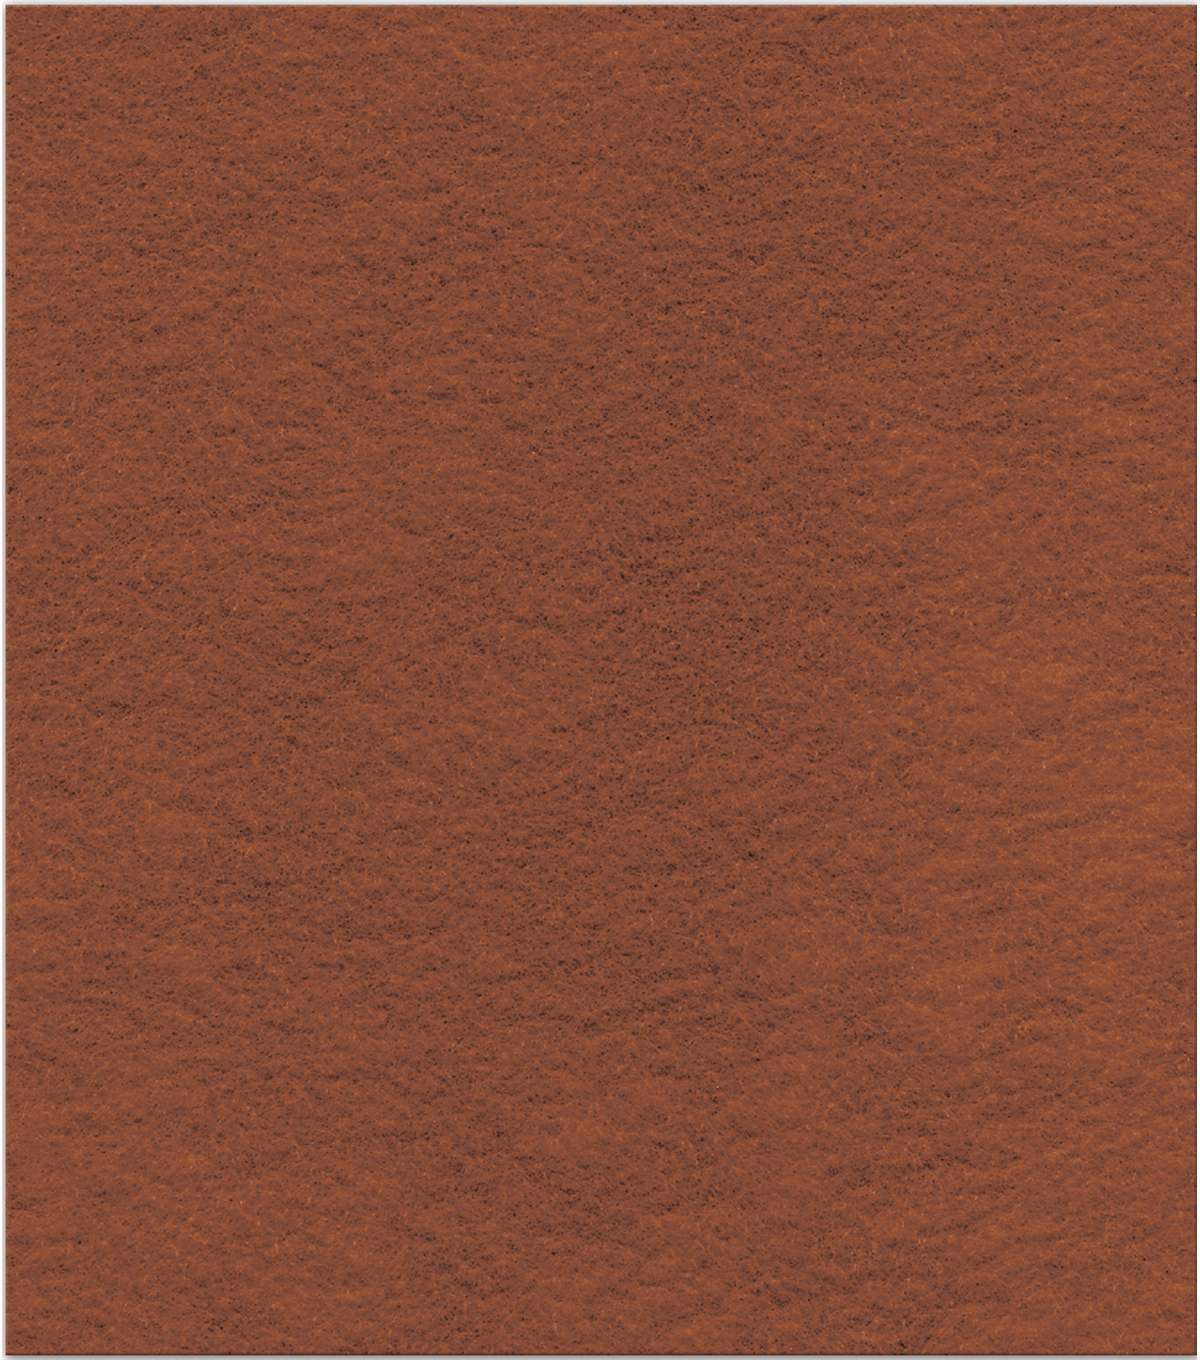 9x12 Presto Copper Canyon Sicky Back Felt